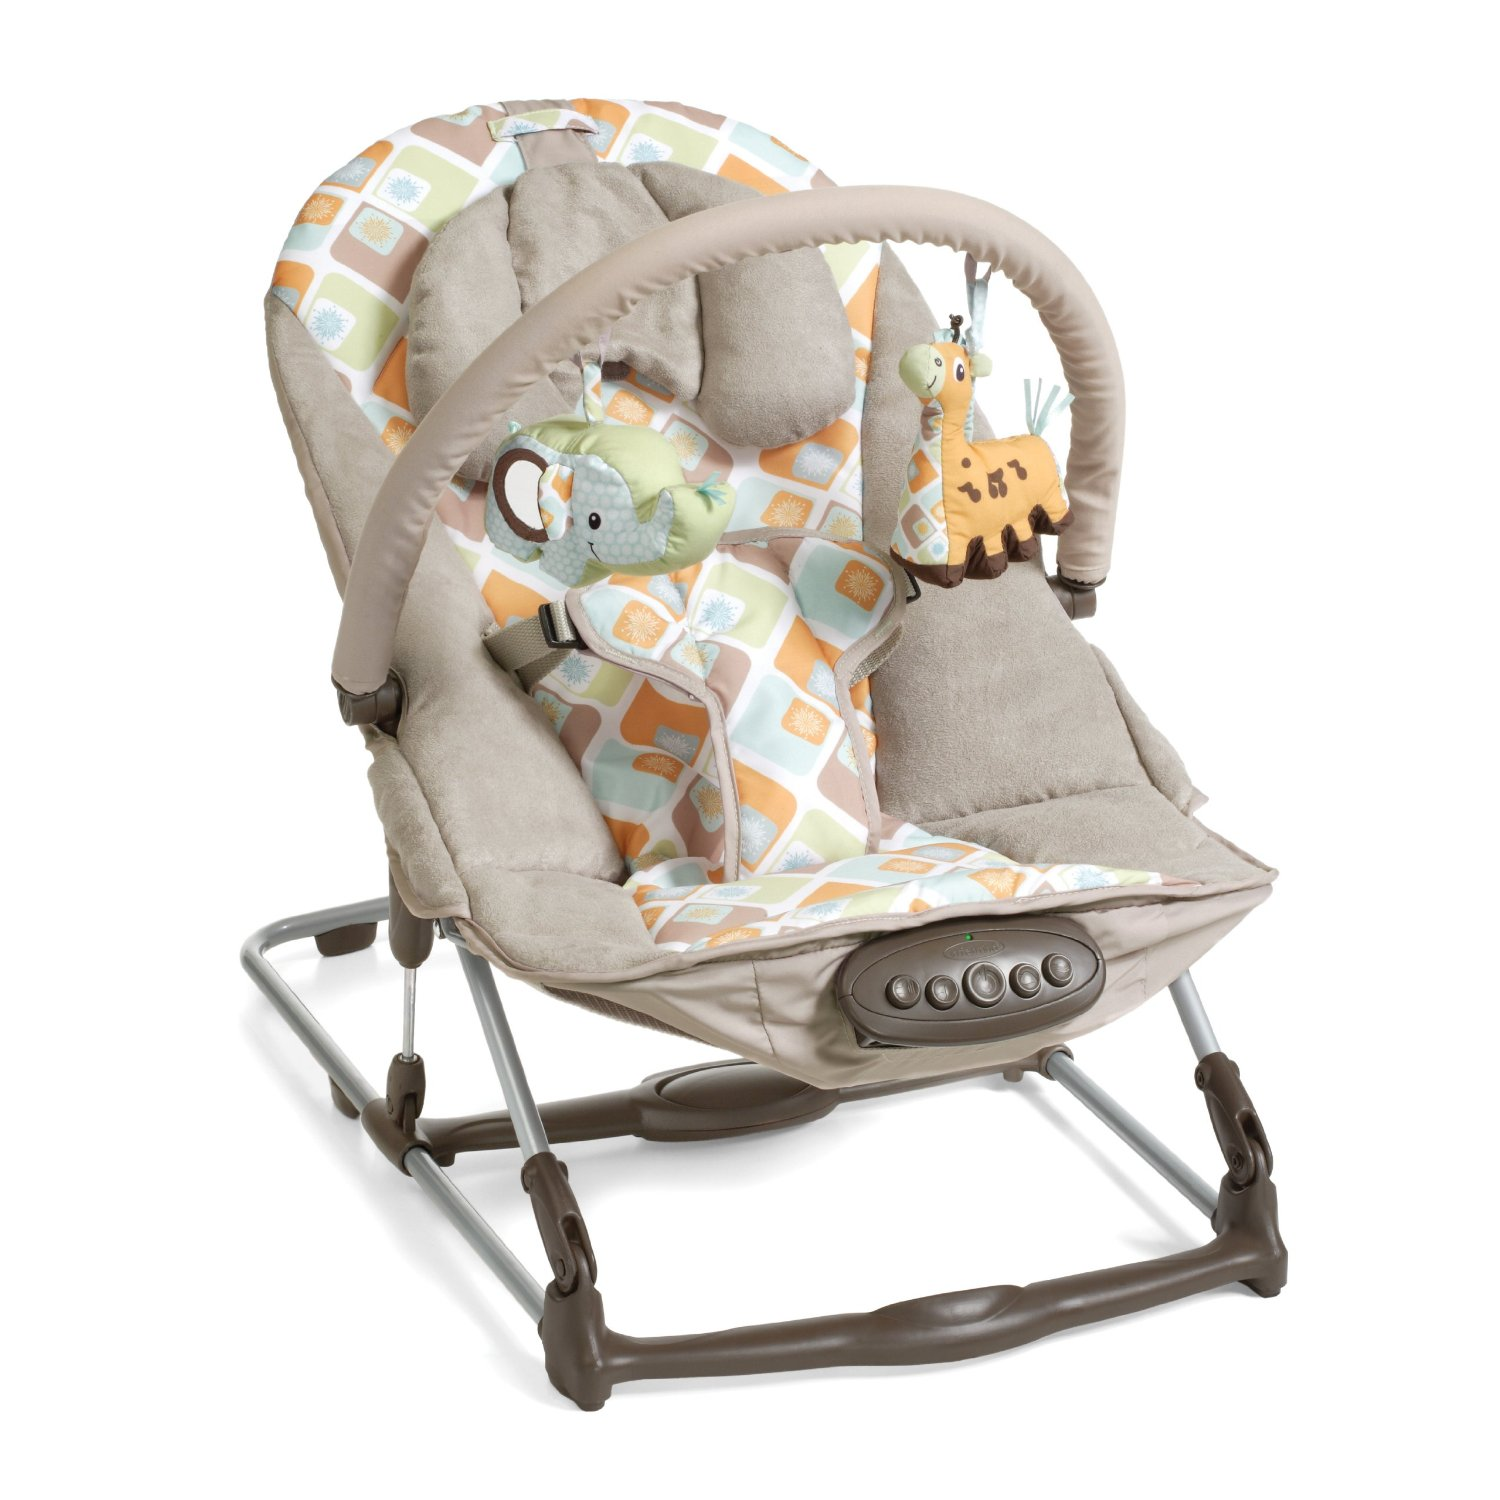 Next Stop - (Another) Baby: Top 10 List - Baby Chair/Swing ...